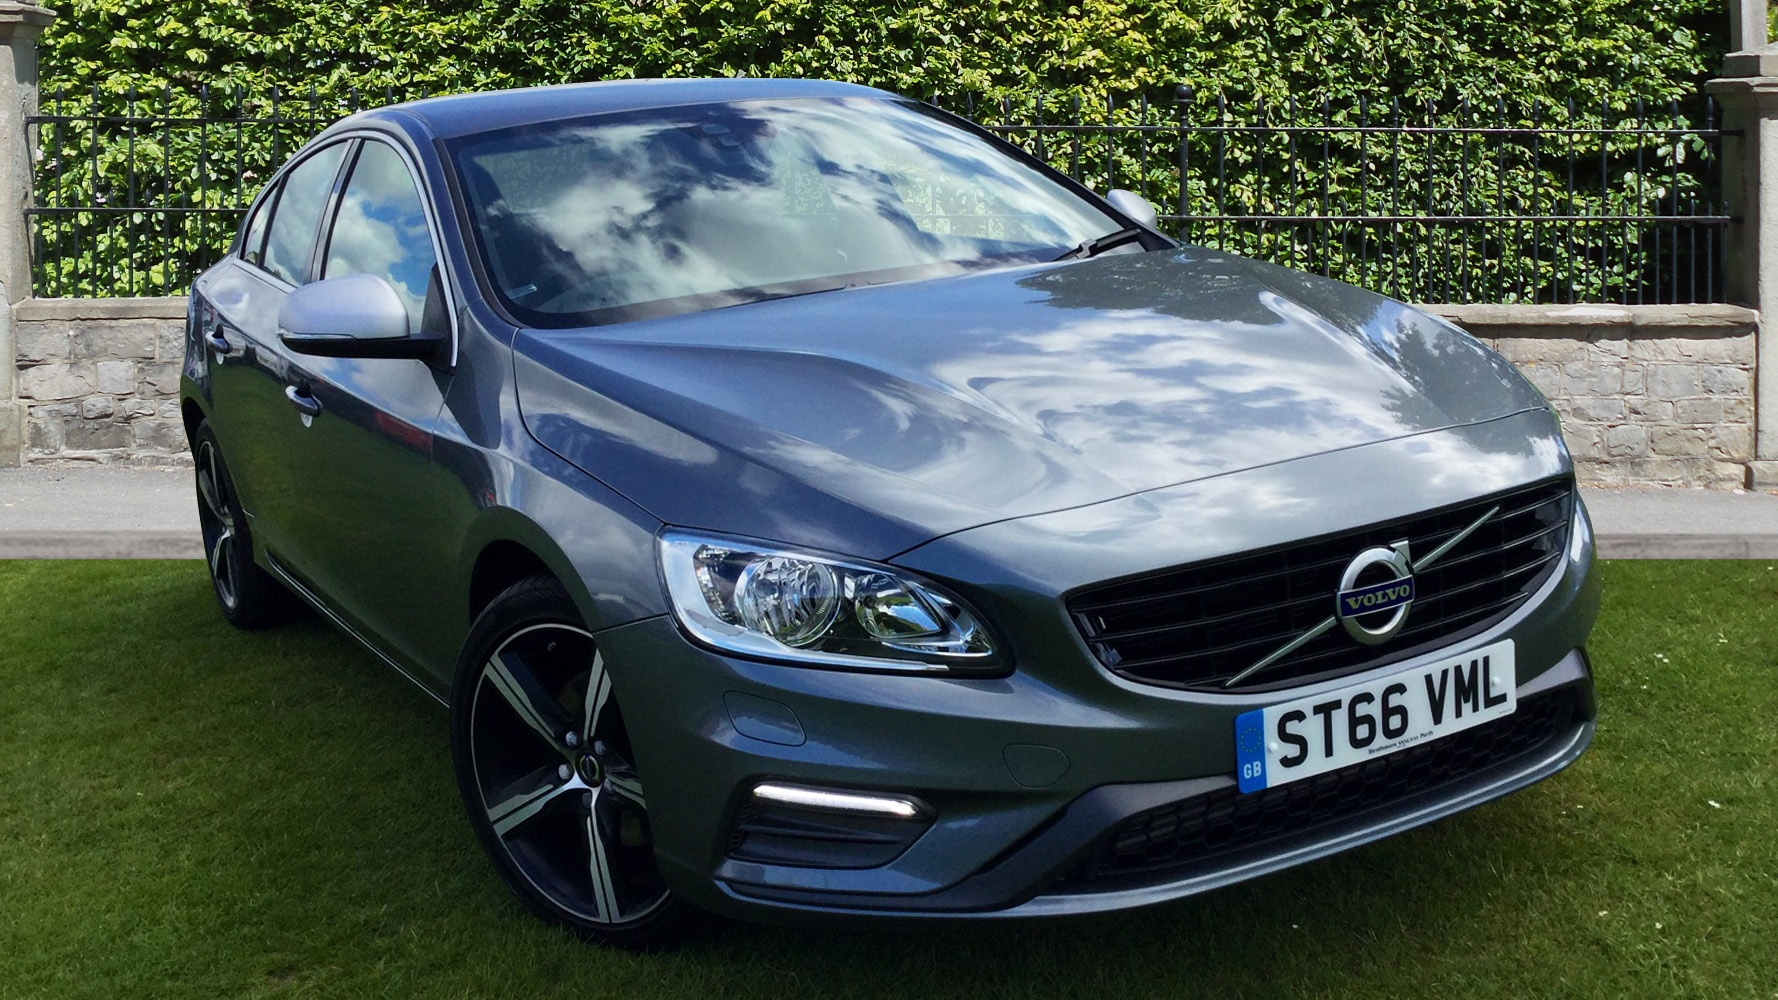 volvo s60 d3 150 r design nav demonstration car by strathmore perth. Black Bedroom Furniture Sets. Home Design Ideas